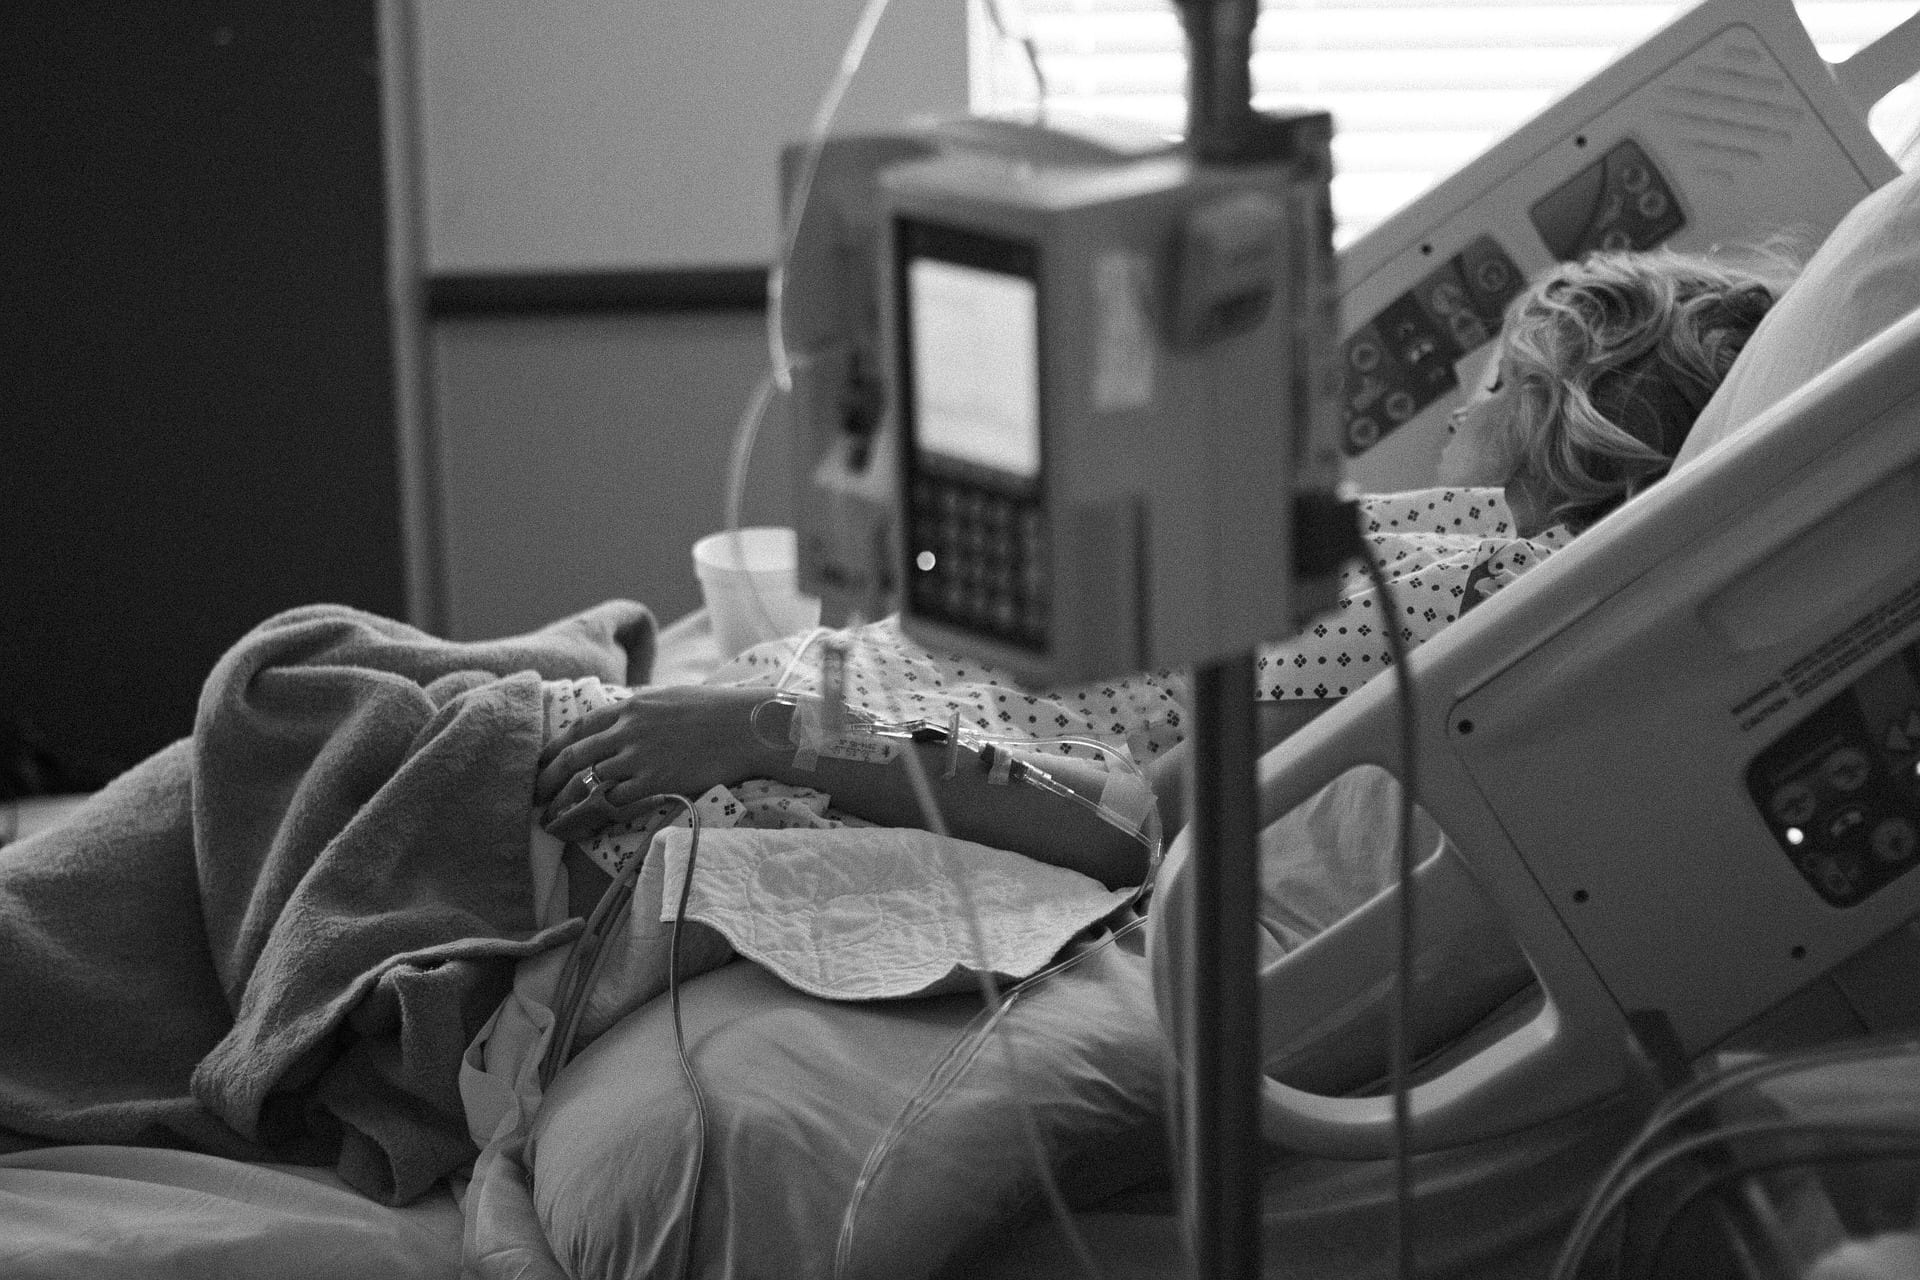 A woman pictured in a hospital bed. BIA-ALCL lawsuits are on the rise.